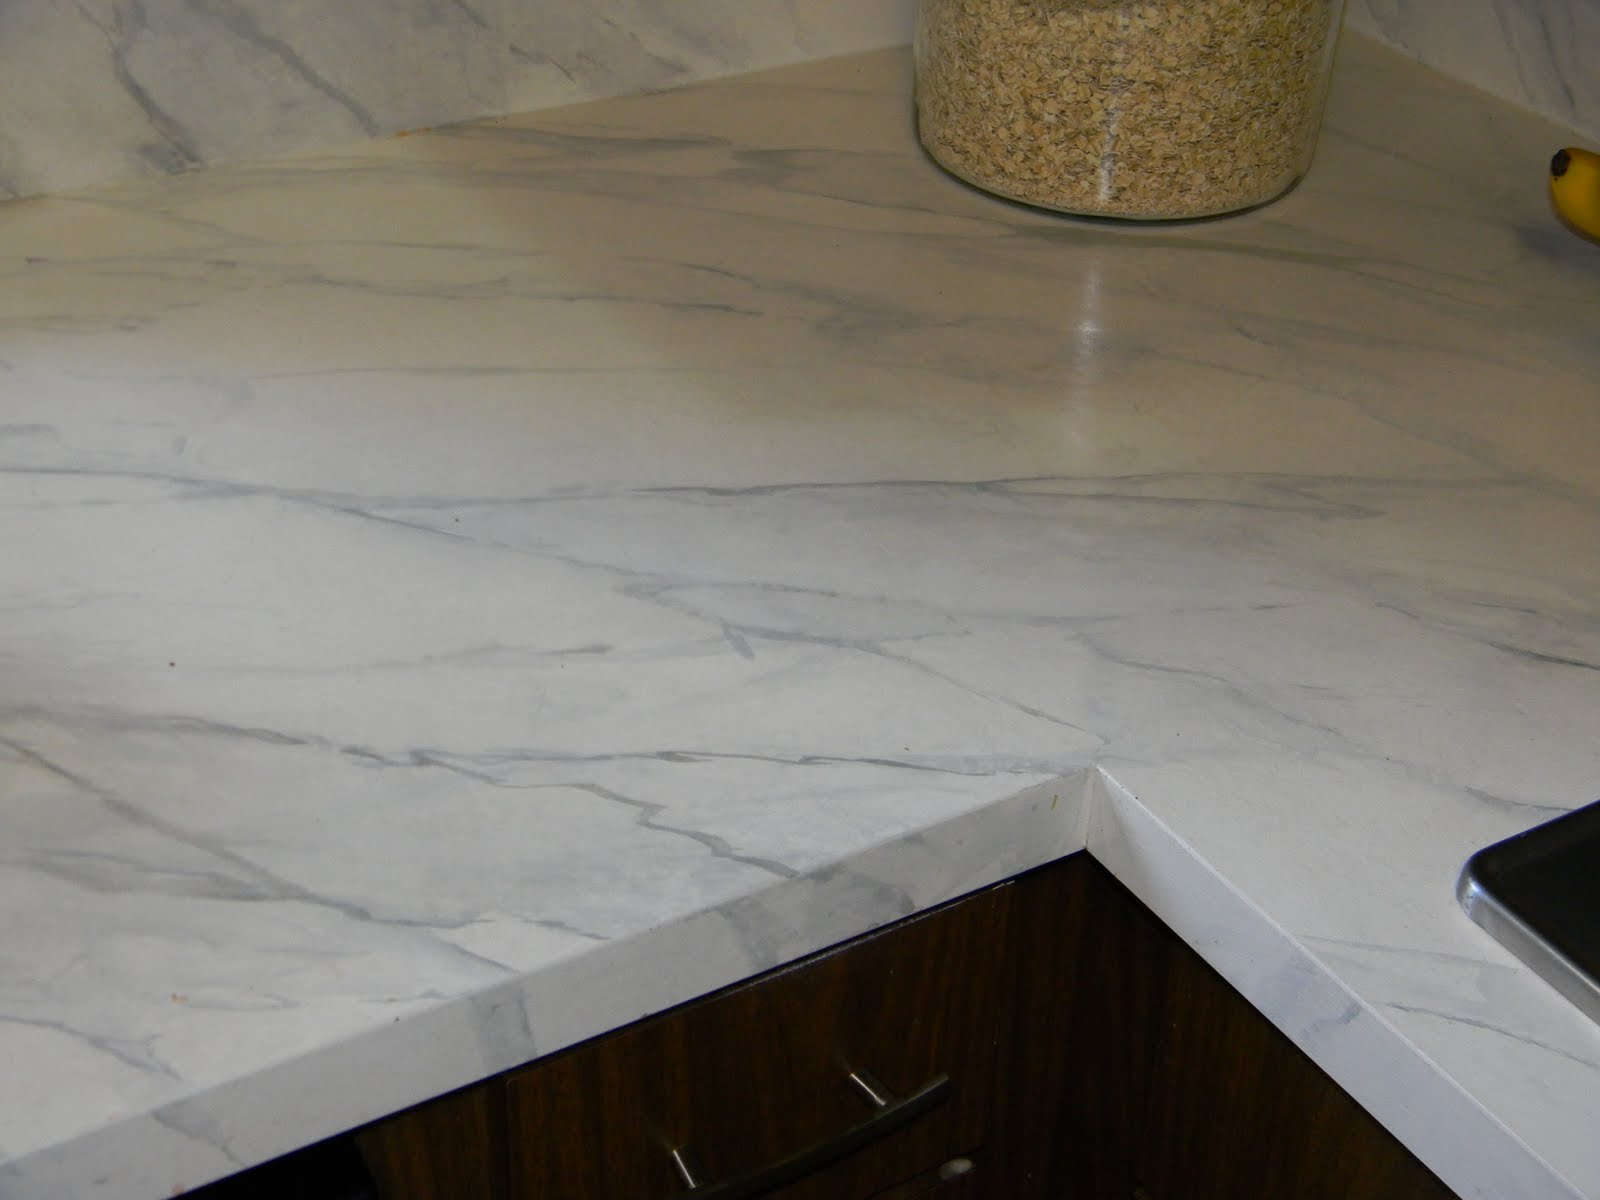 how to happy hour faux carerra marble marble kitchen countertops GORGEOUS SHINY THINGS How To Happy Hour Faux Carrara Marble IKEA hack